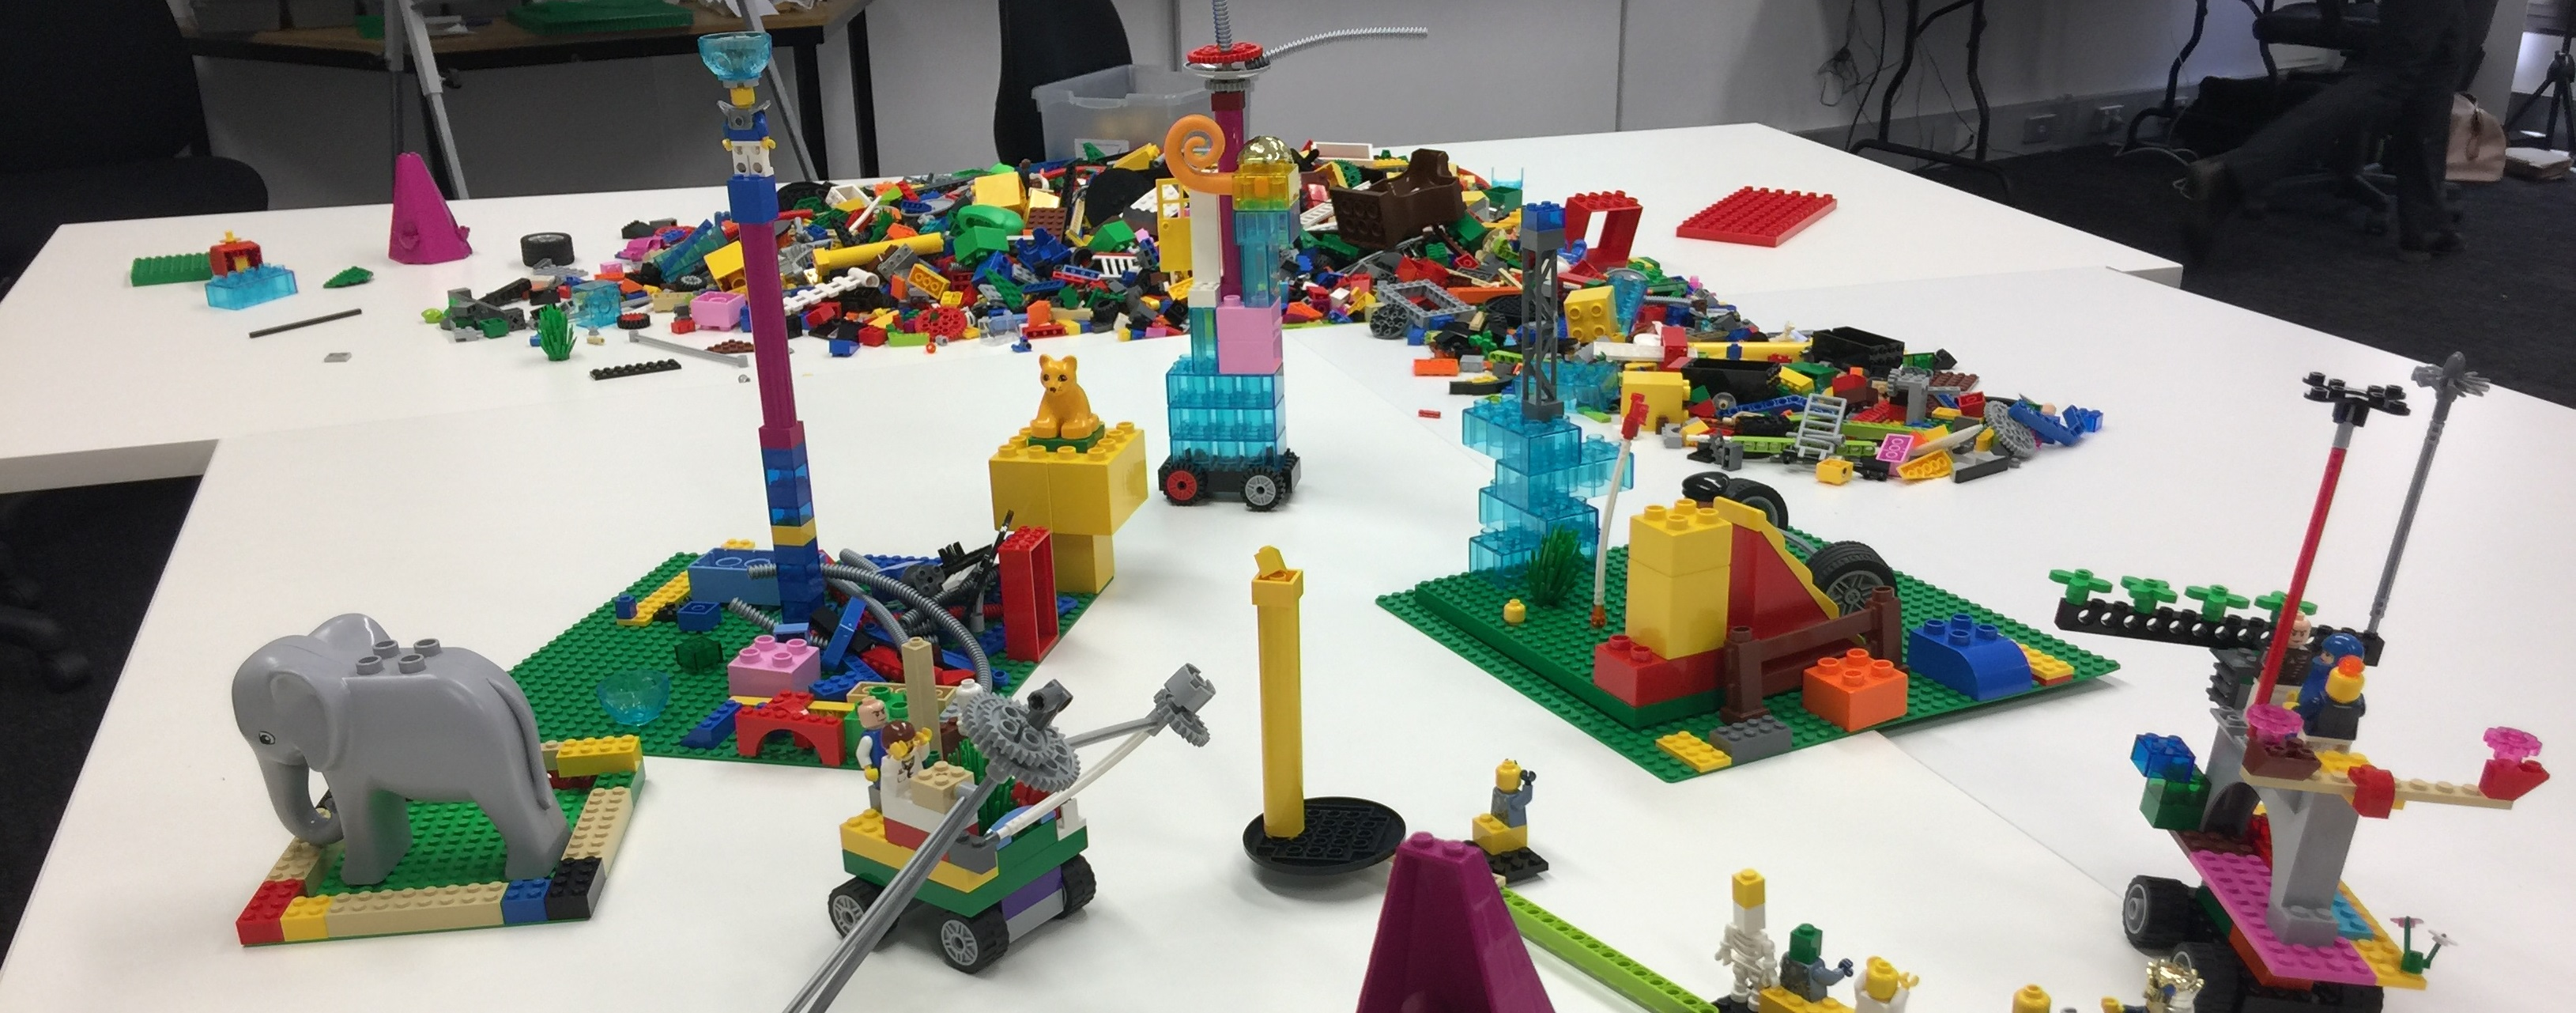 LEGO® SERIOUS PLAY® Materials and Methodology